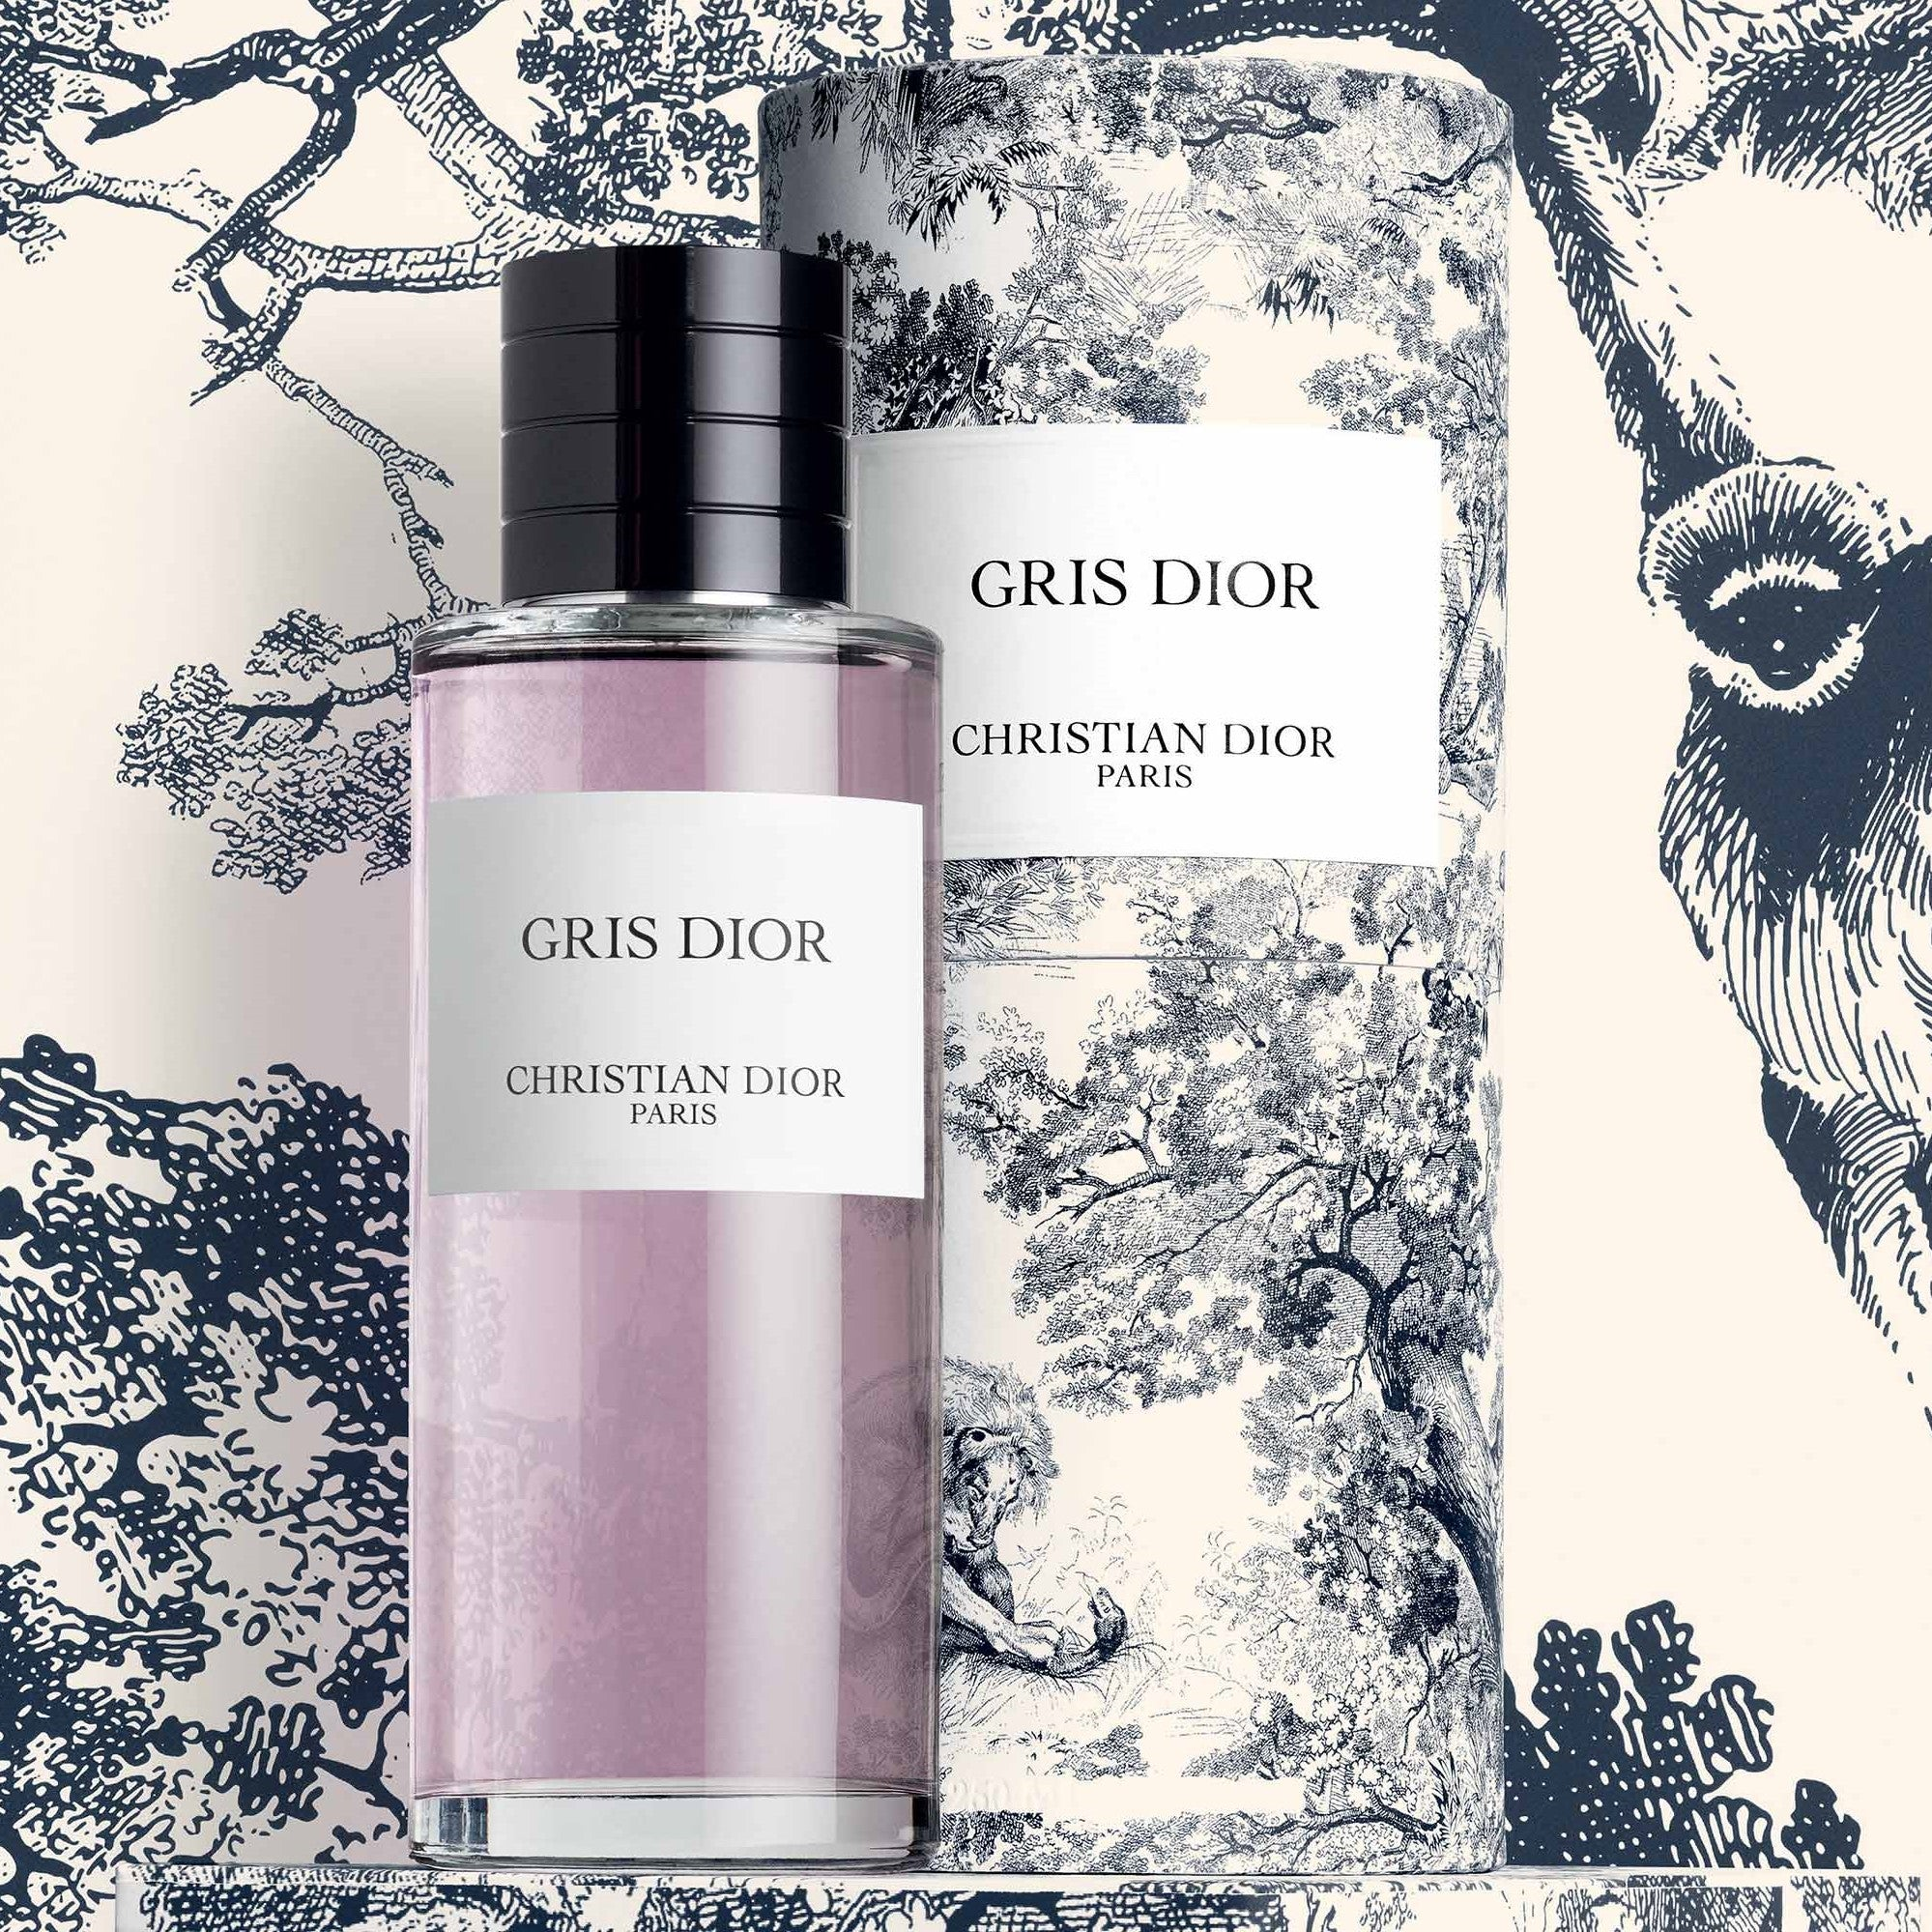 GRIS DIOR - TOILE DE JOUY LIMITED EDITION ~ Fragrance